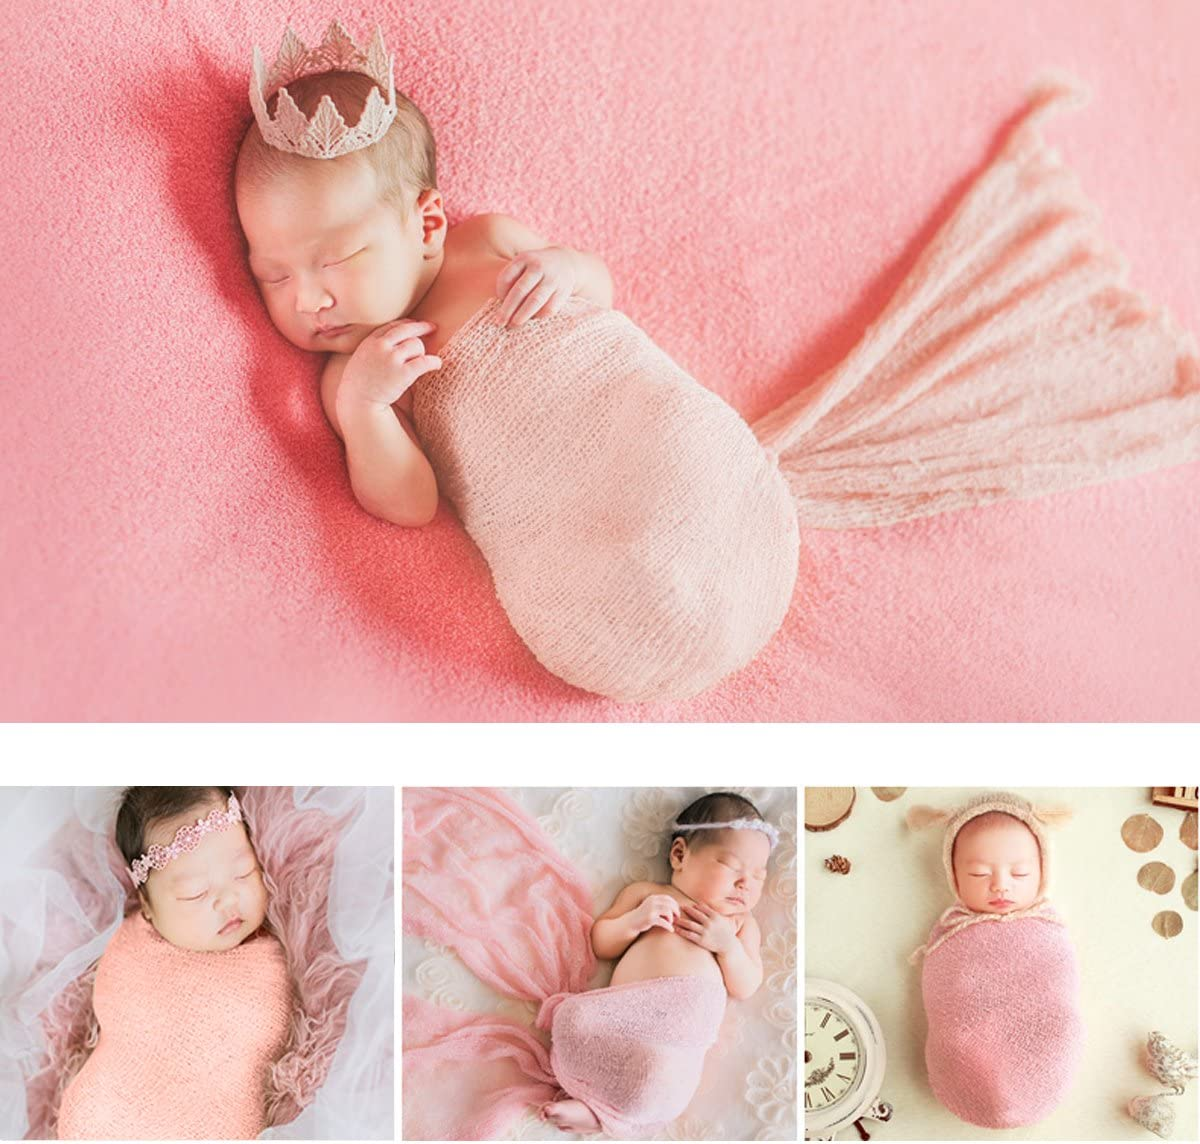 /Pack of 3/Baby Photo Props Favors Snow Zahnfarbenen Beige + Purple OULII Long Ripple Wrap DIY Newborn Baby Boy Girl Photography Wrap/